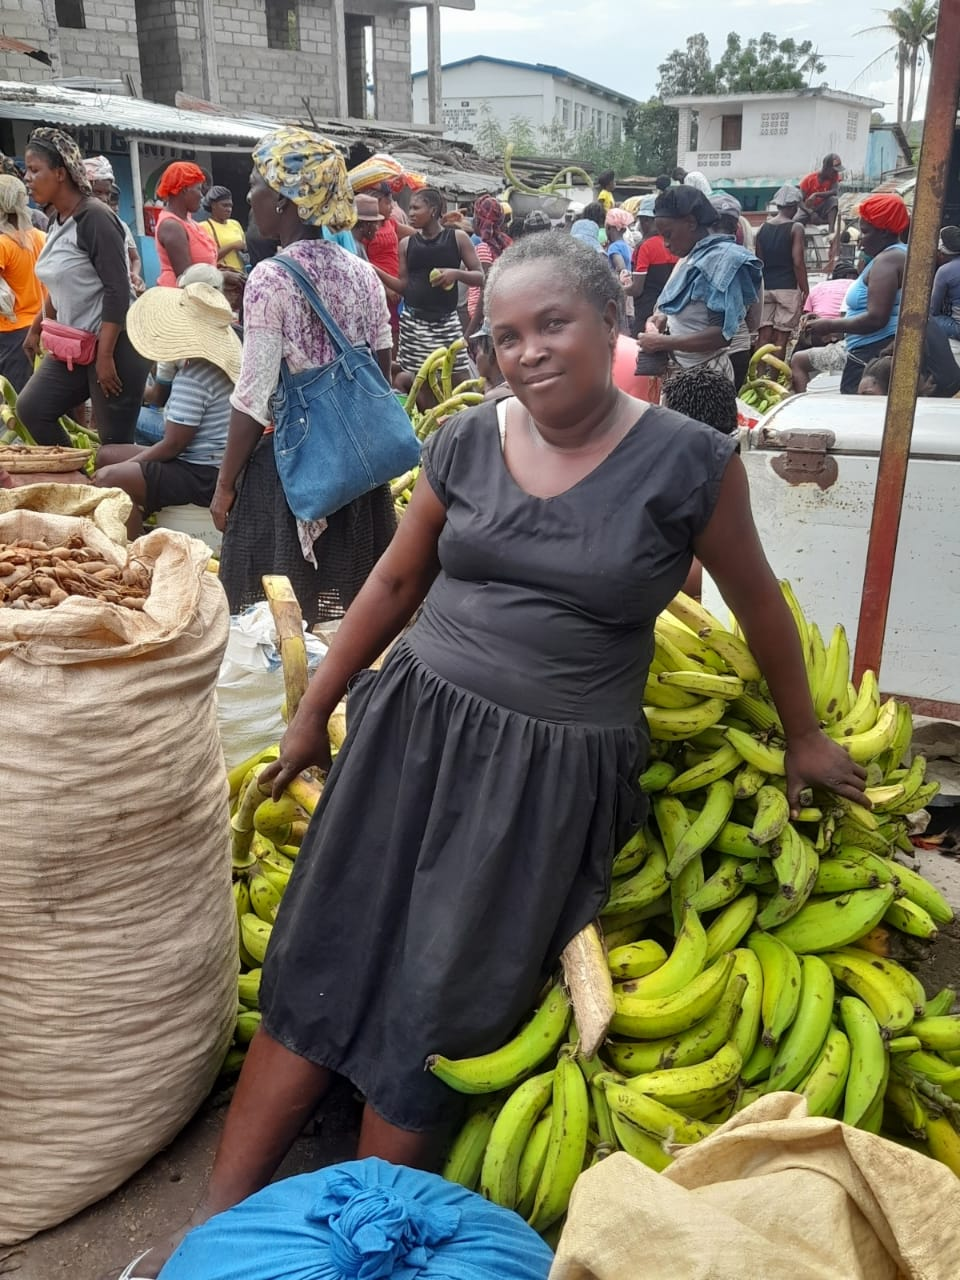 Fasemie Geffrard stands in front of a stack of bananas in a bustling outdoor marketplace in Haiti.